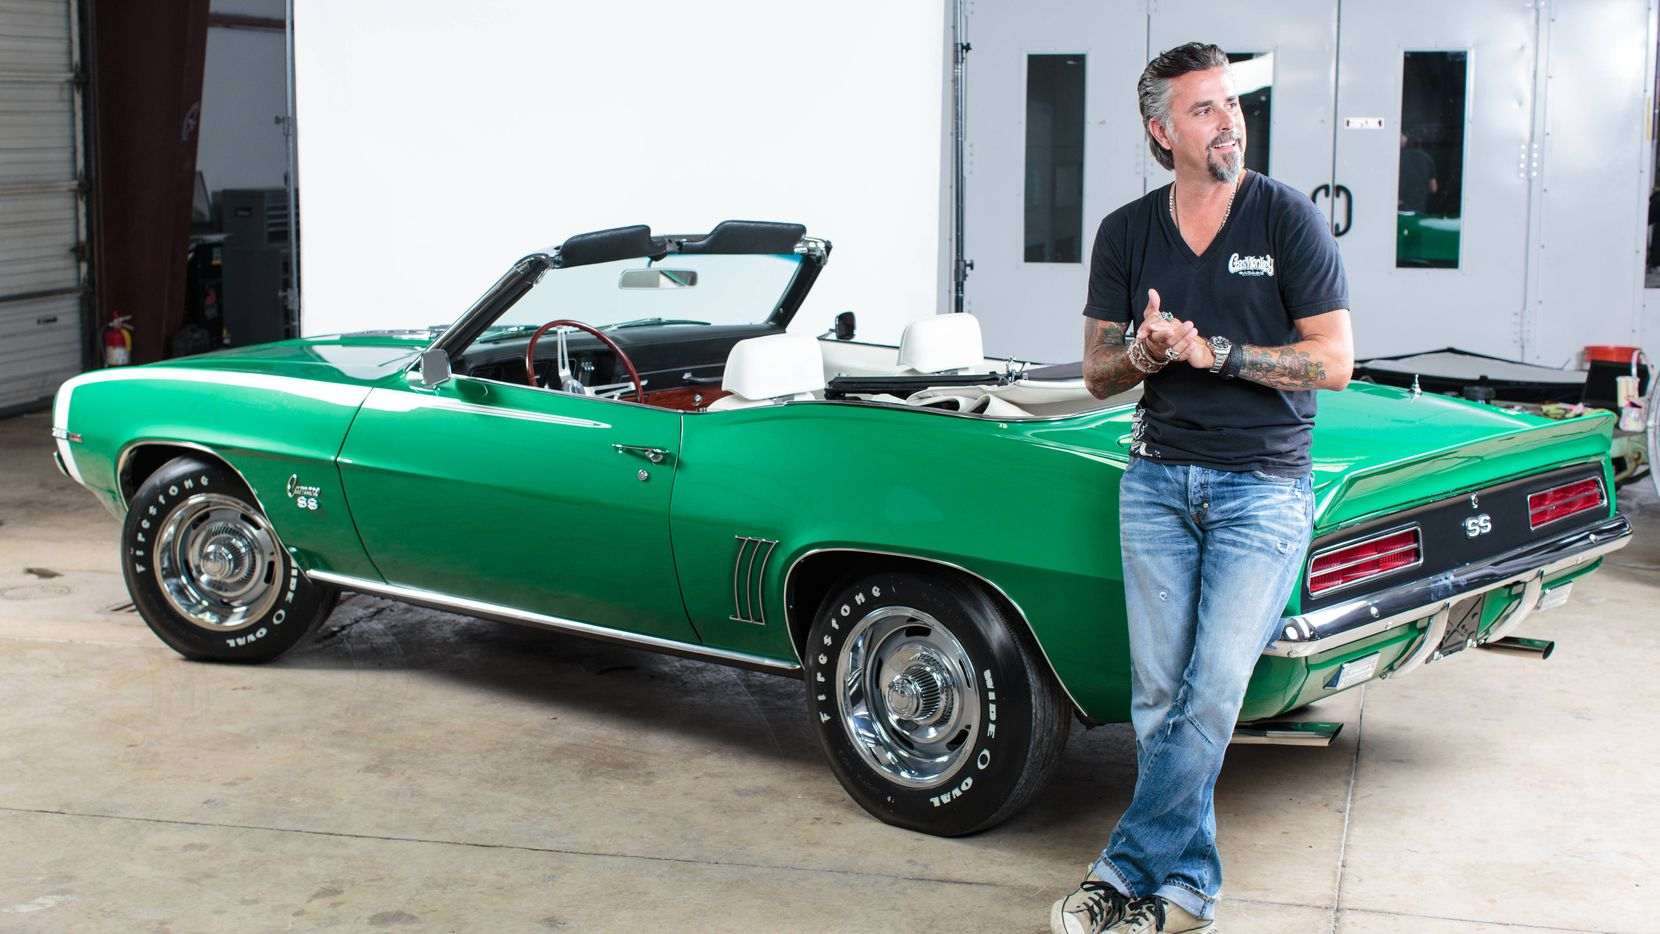 Richard Rawlings, founder of the Gas Monkey empire, which now includes Gas Monkey Garage, Gas Monkey Bar and Grill, Gas Monkey Live music venue, a dragster, branded tequila and sponsored race horse.